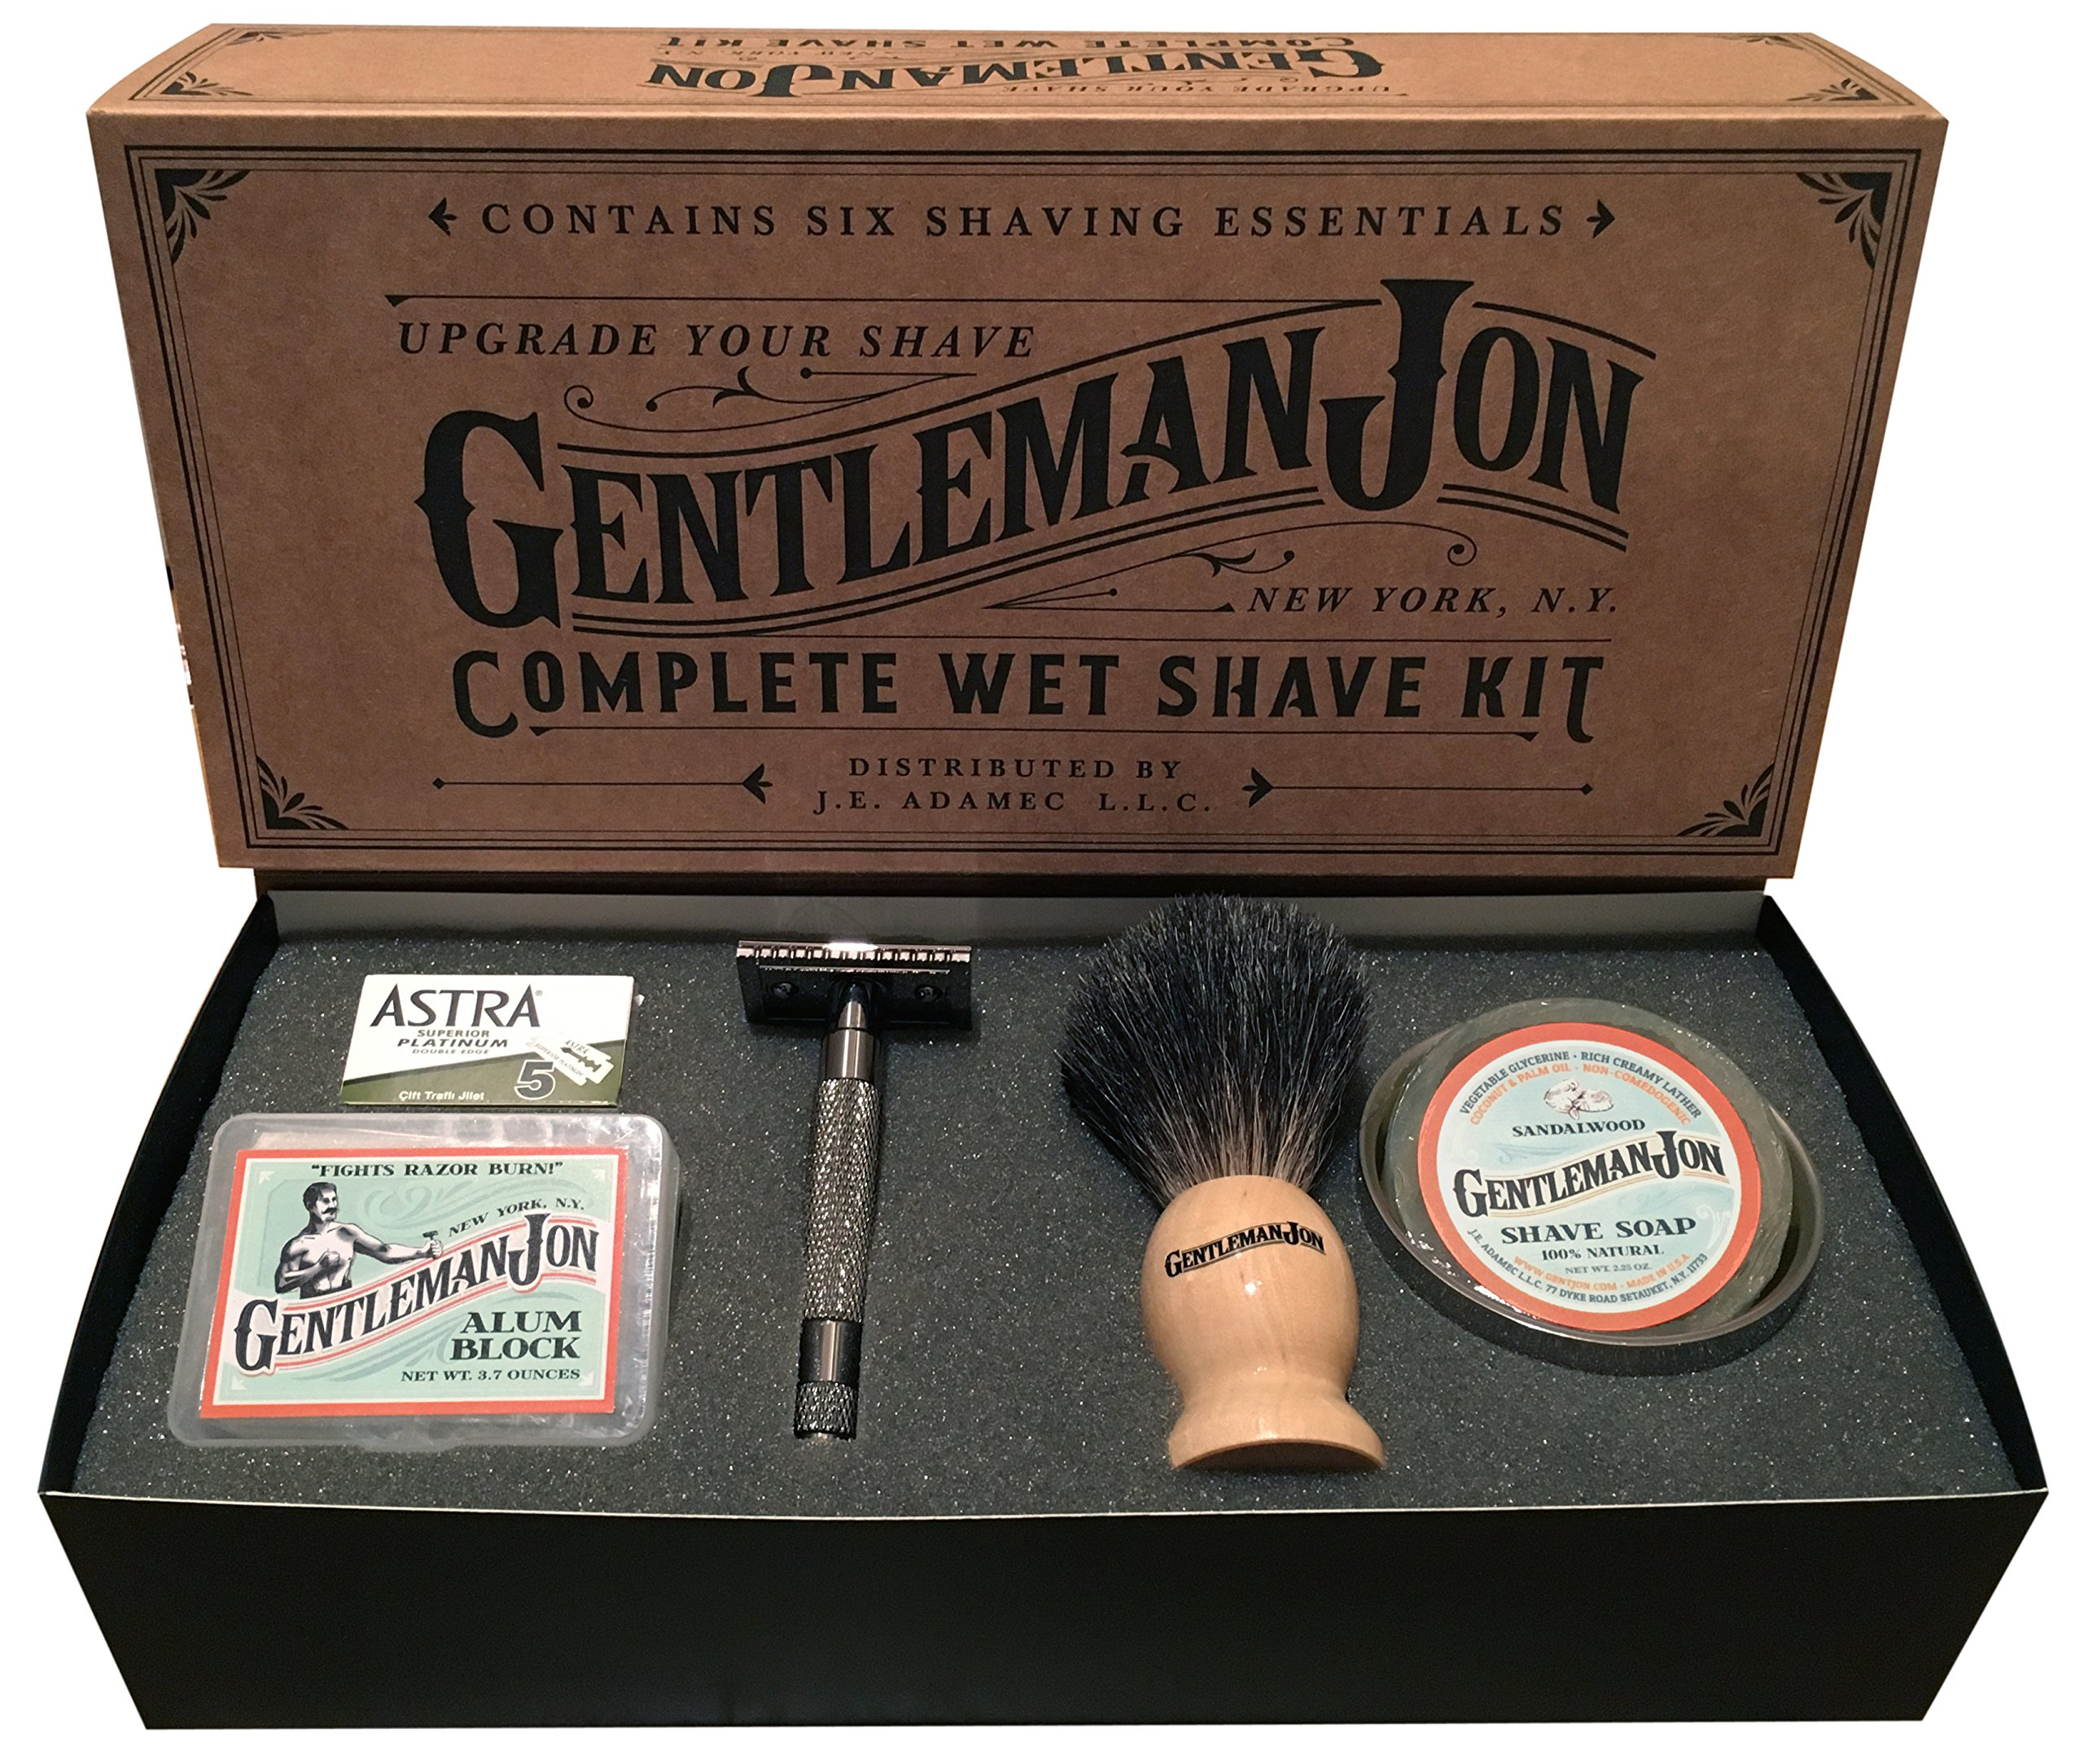 Gentleman Jon Complete Wet Shave Kit | Includes 6 Items: One Safety Razor, One Badger Hair Brush, One Alum Block, One Shave Soap, One Stainless Steel Bowl and Five Razor Blades by Gentleman Jon